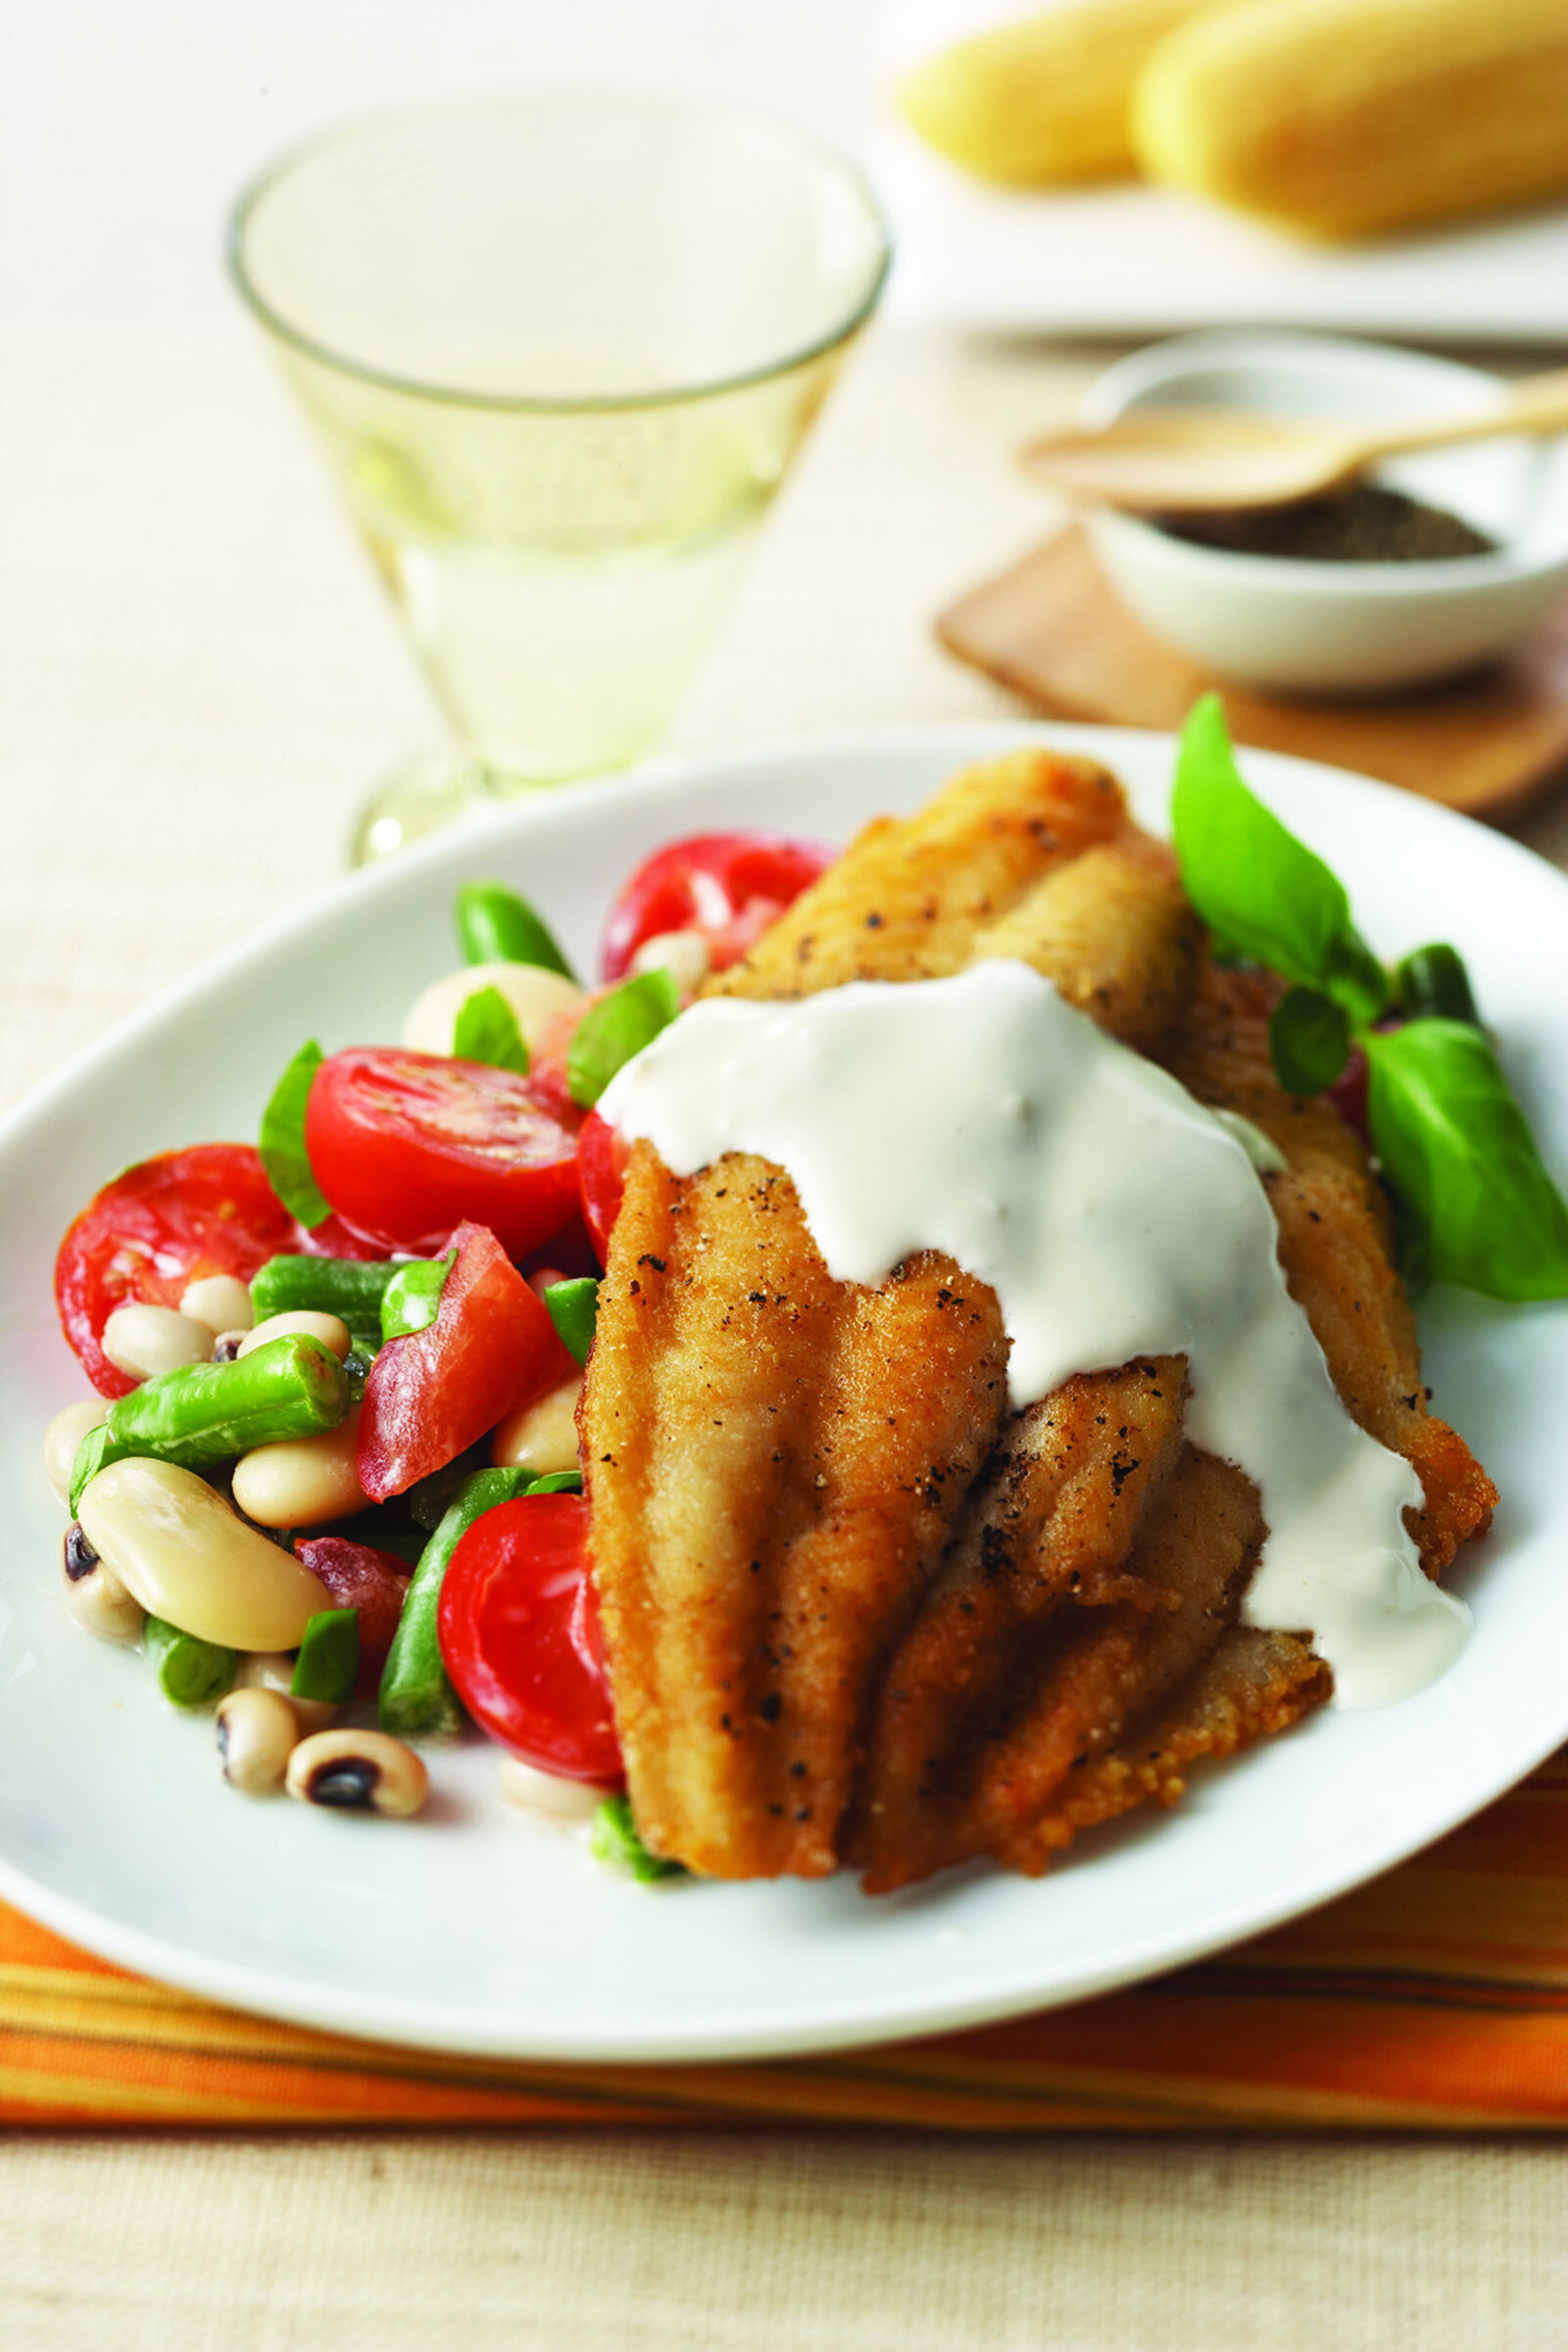 Crispy Fried Catfish with Tomato-Field Peas and Garlic Mayonnaise -